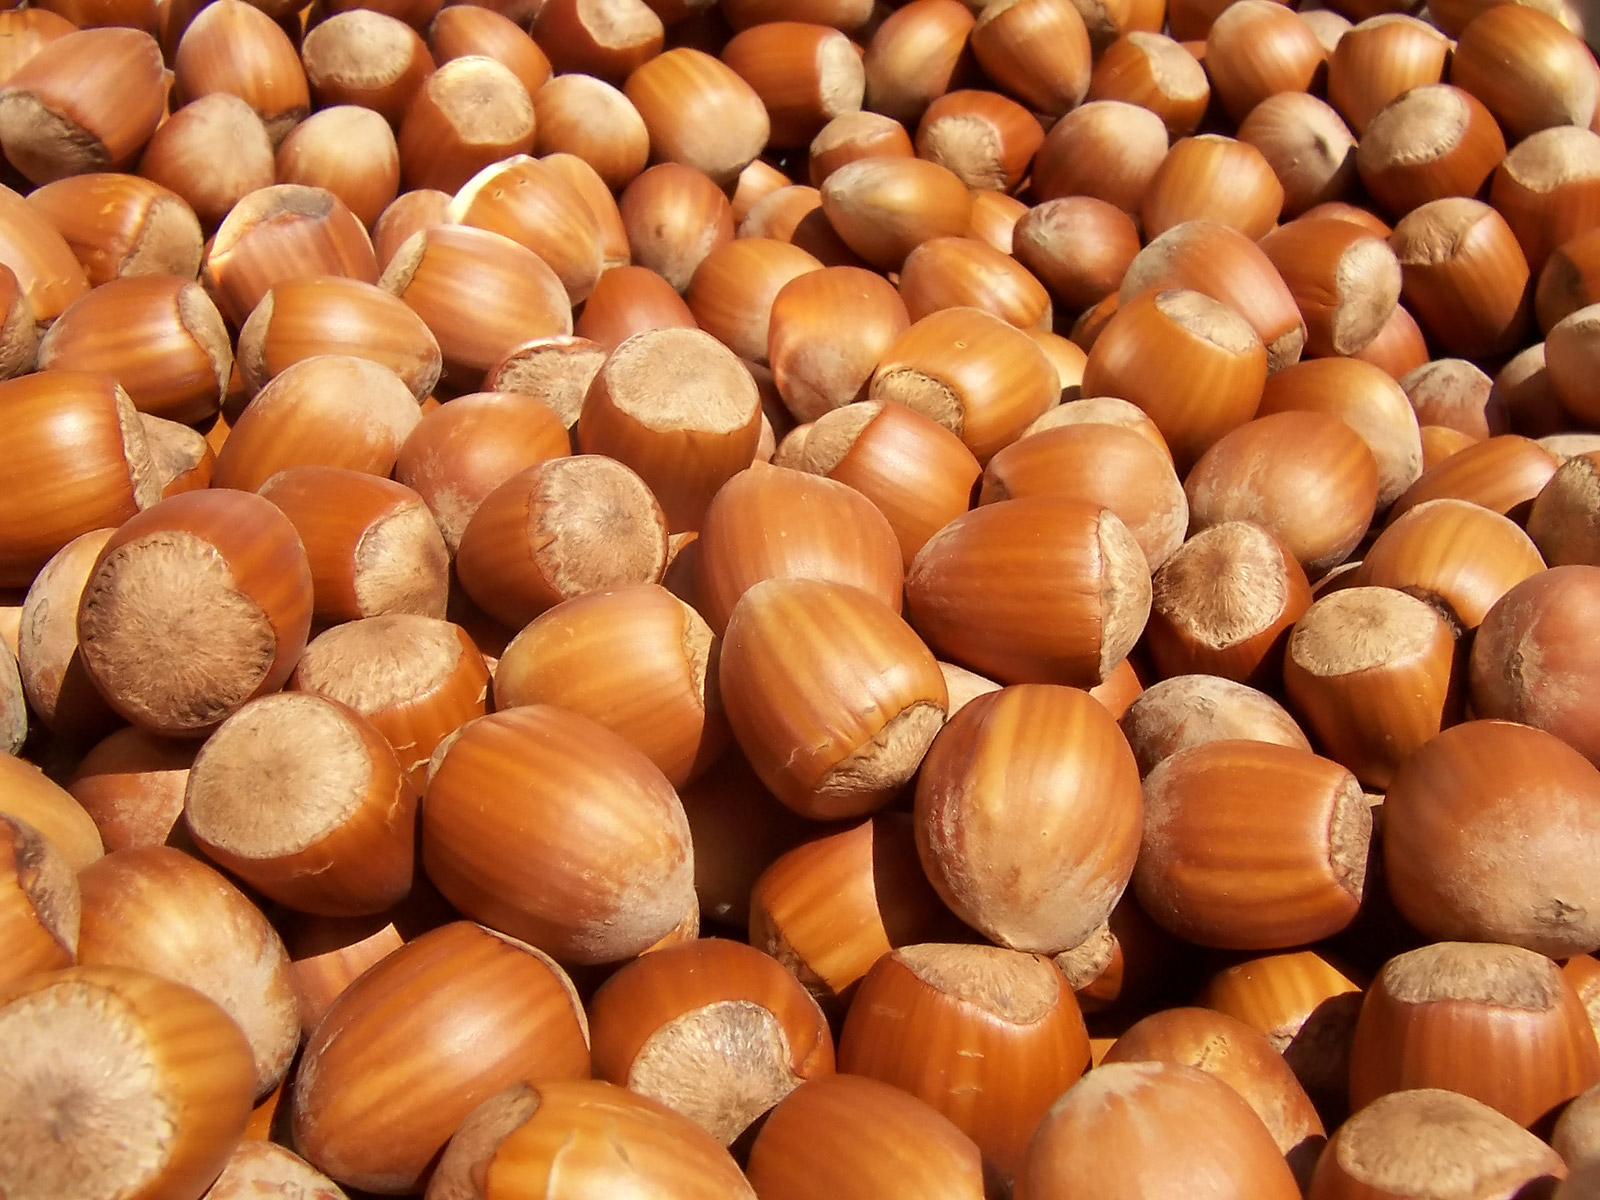 What does a hazelnut tree look like